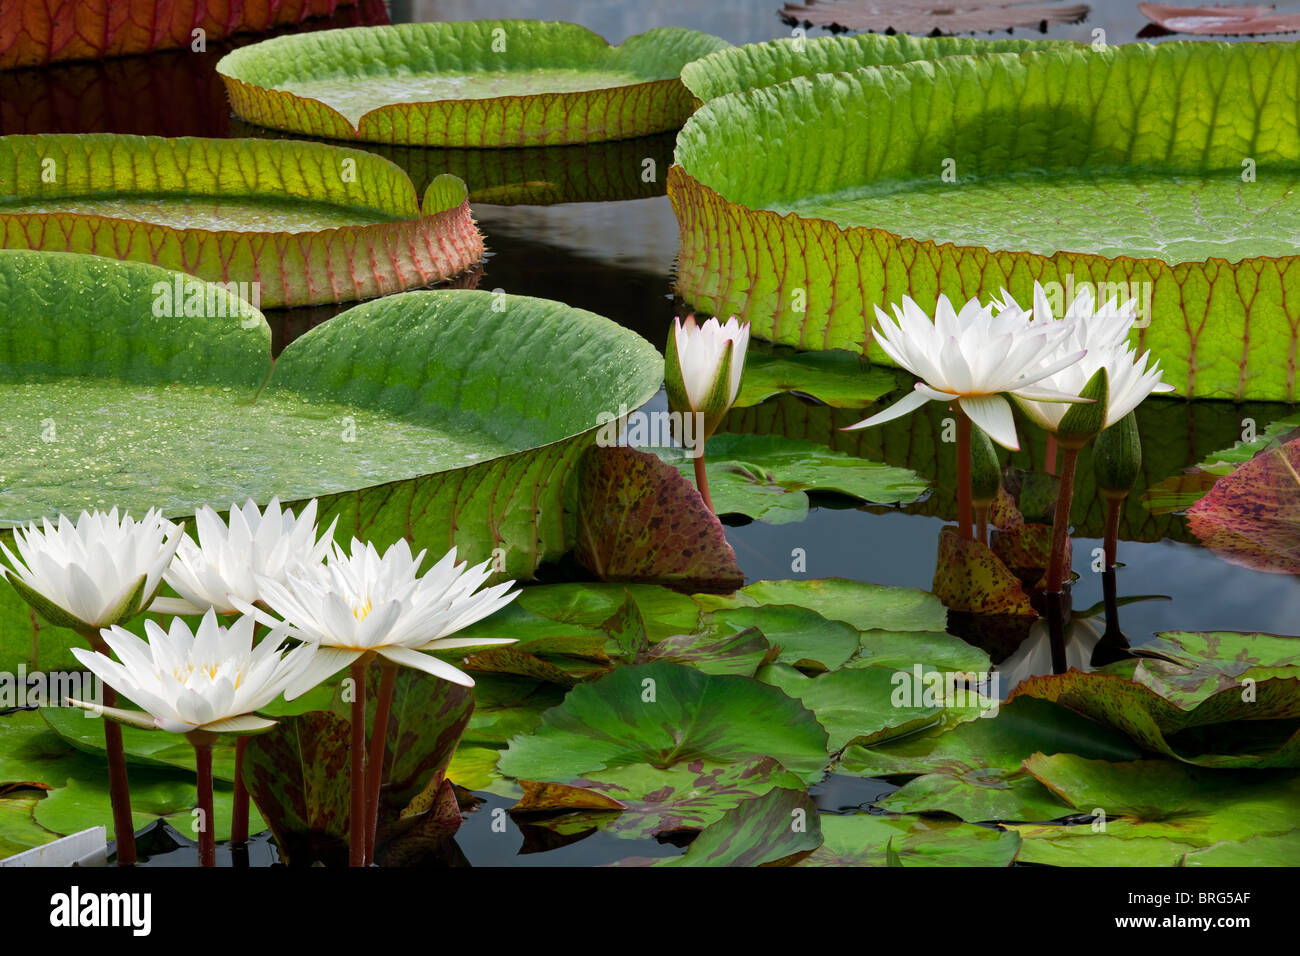 White tropical water lilies and large Amazon Lily leaves. Hughes Water Gardens, Oregon Stock Photo